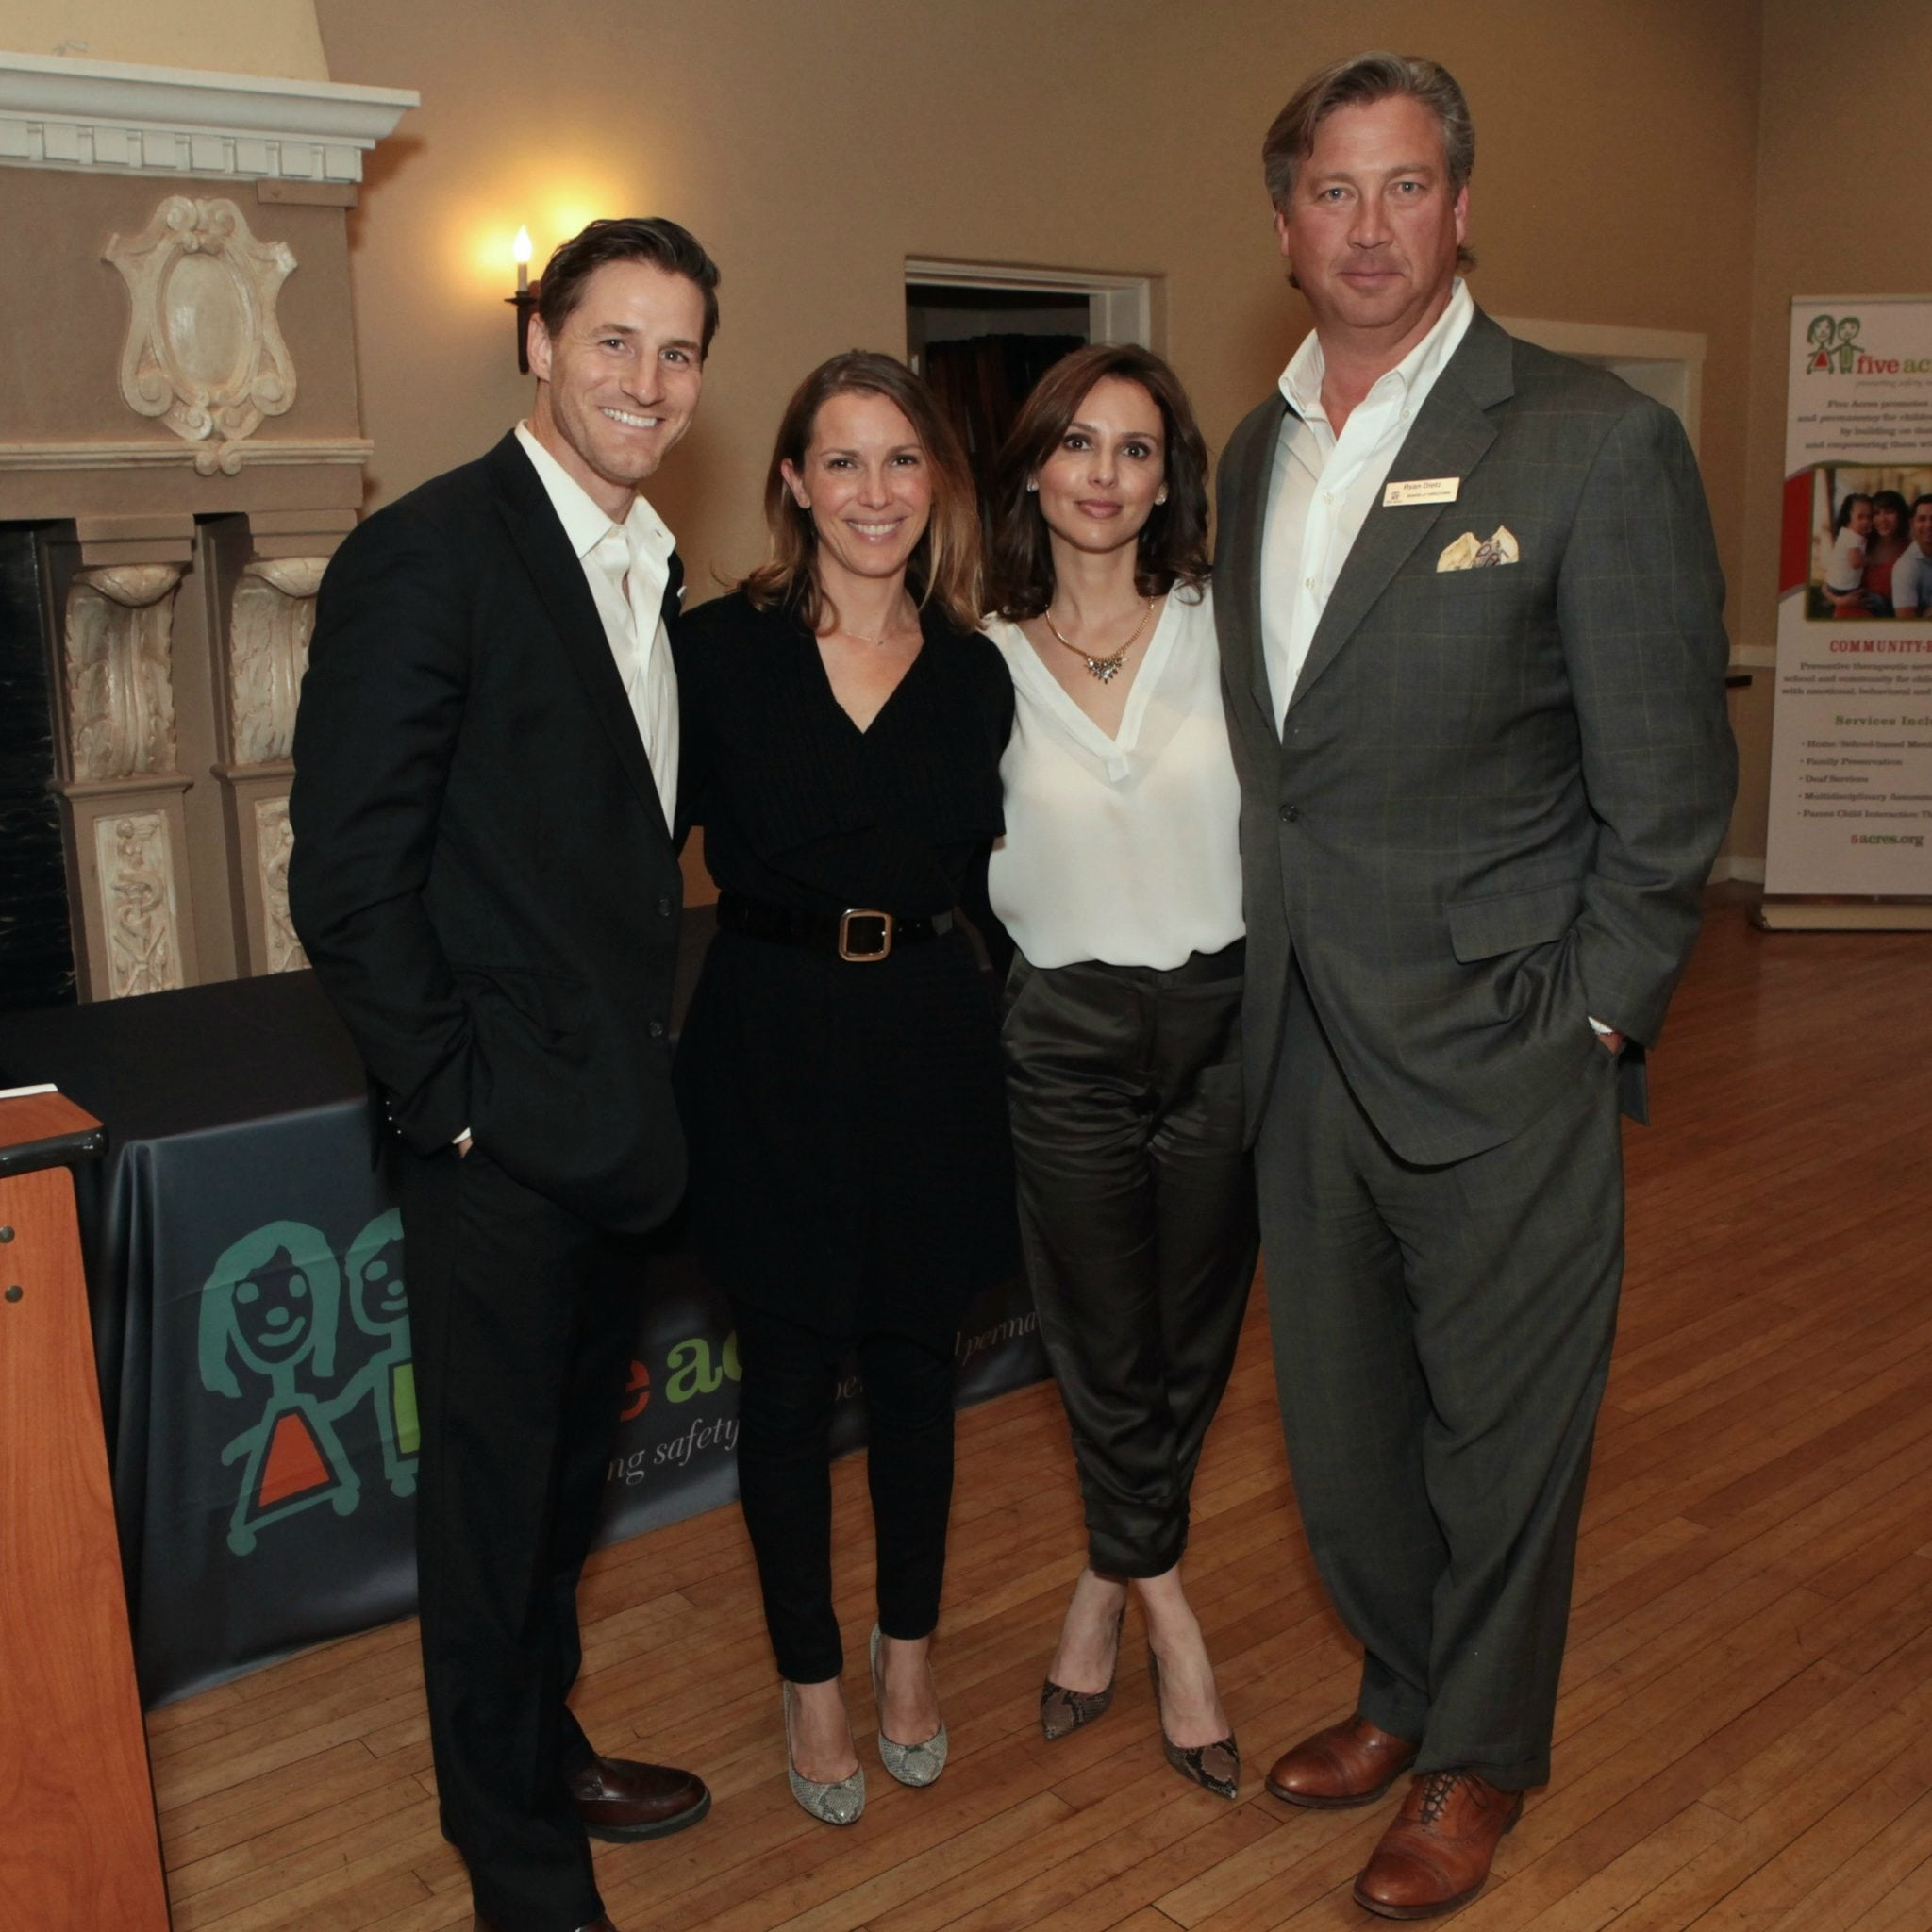 Actor Sam Jaeger with his wife Amber, Maria Johnson Velasquez (Squawkin') and Ryan Dietz (Wells Fargo Bank)